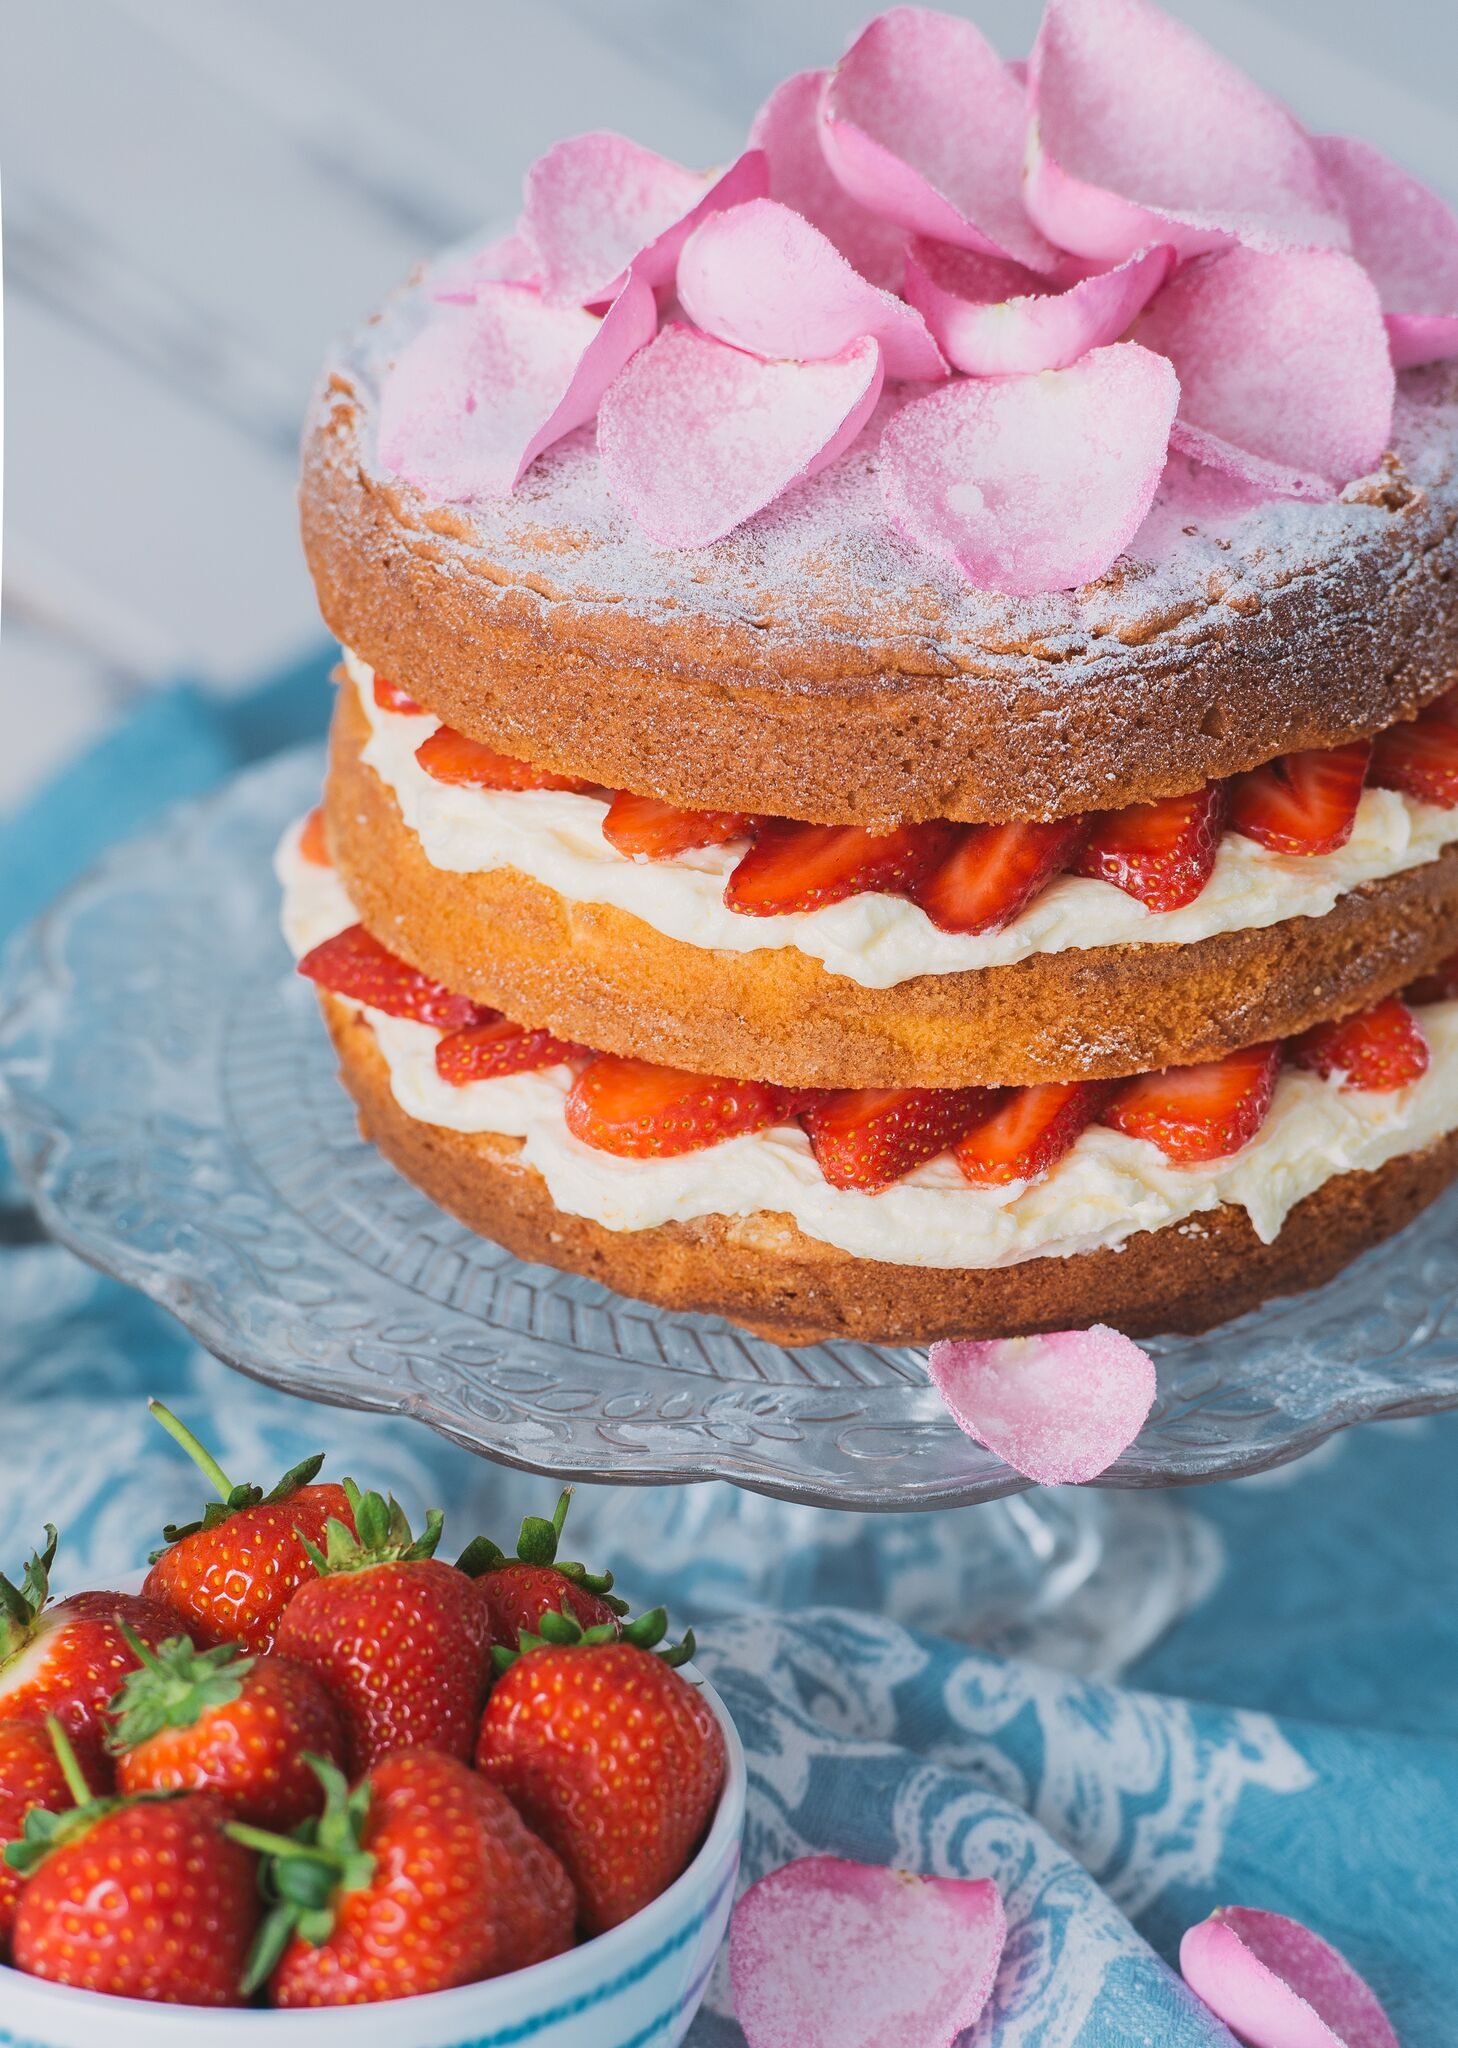 Victoria Spong Cake for The Great British Bake Off, Food Styling